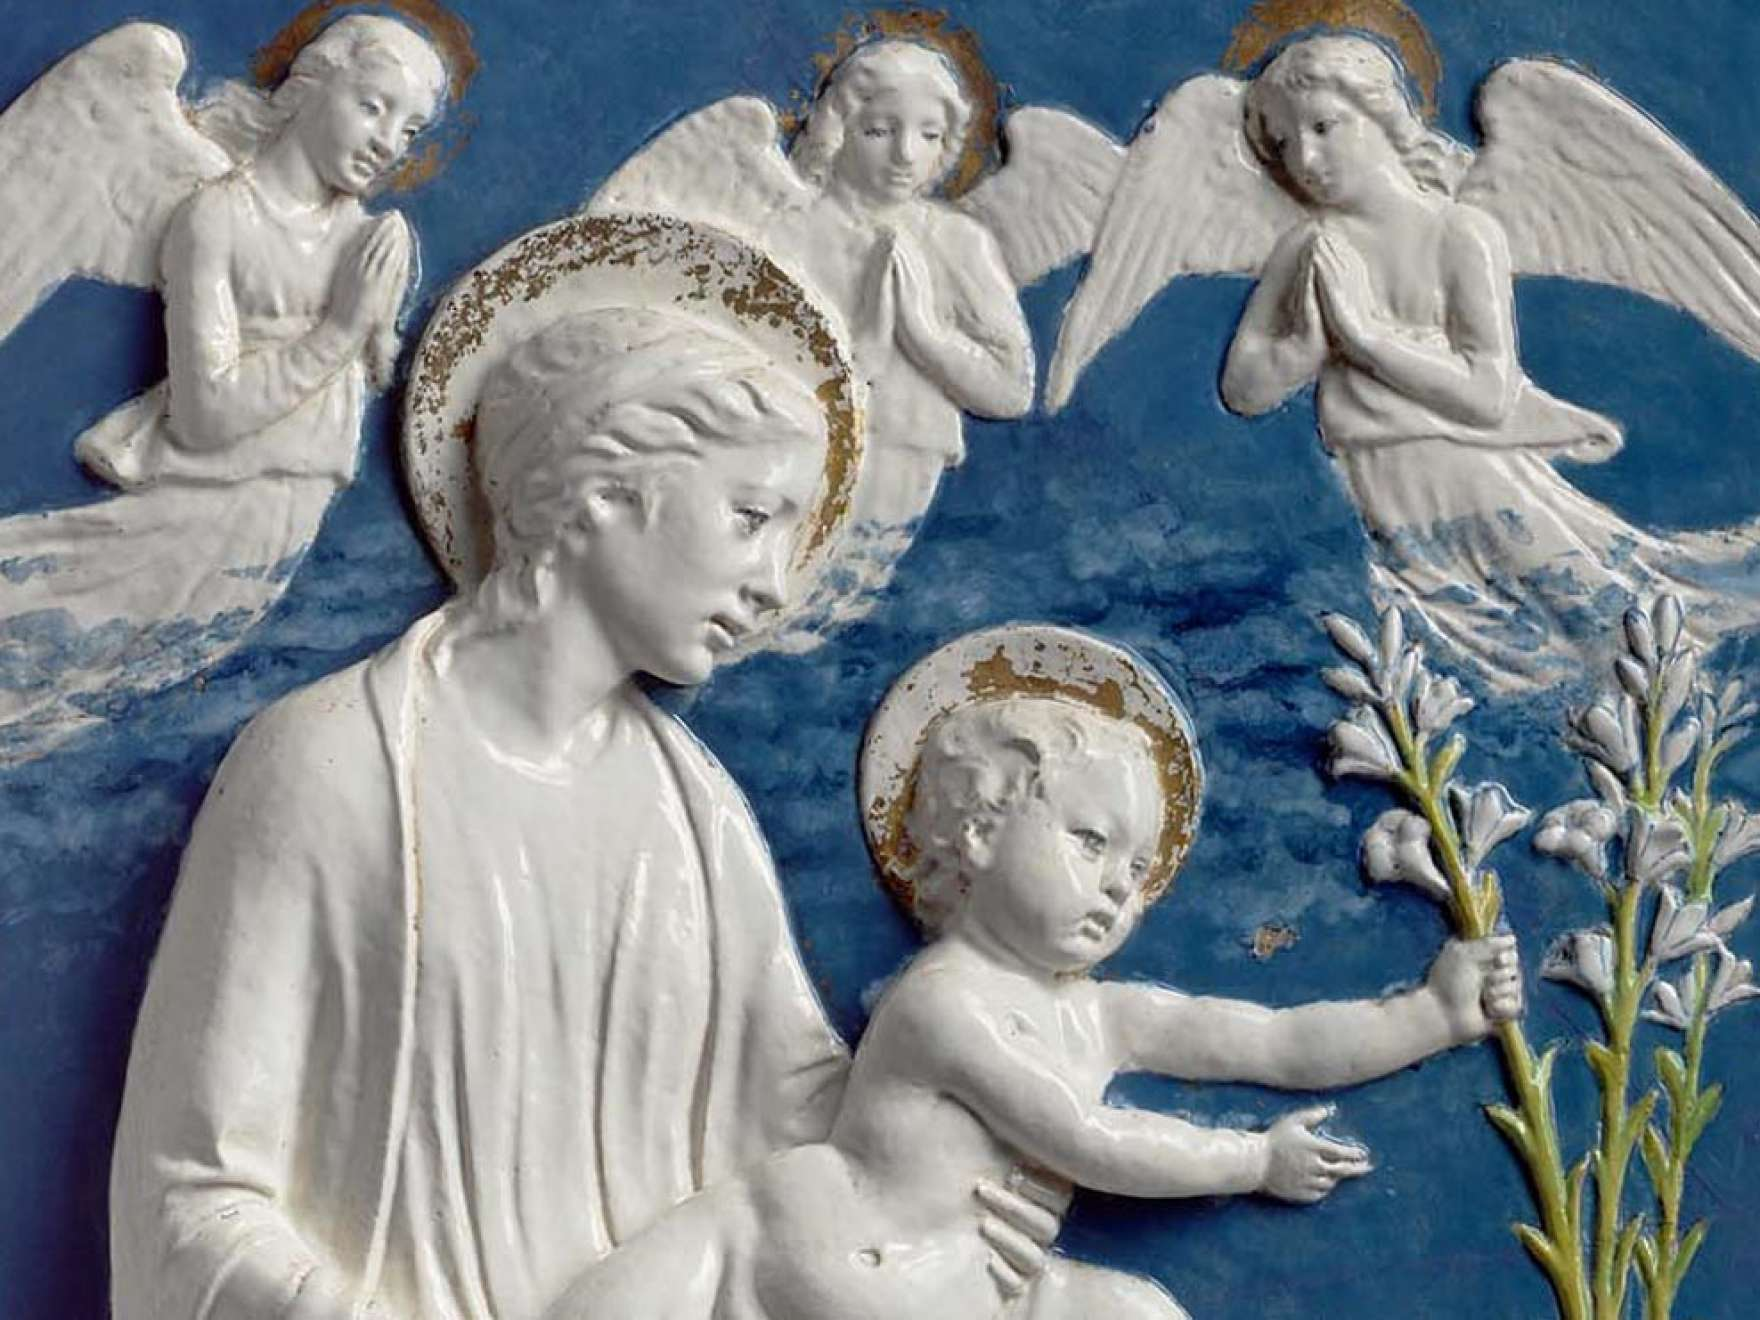 Detail of Luca della Robbia's sculpture Virgin and Child with Lilies